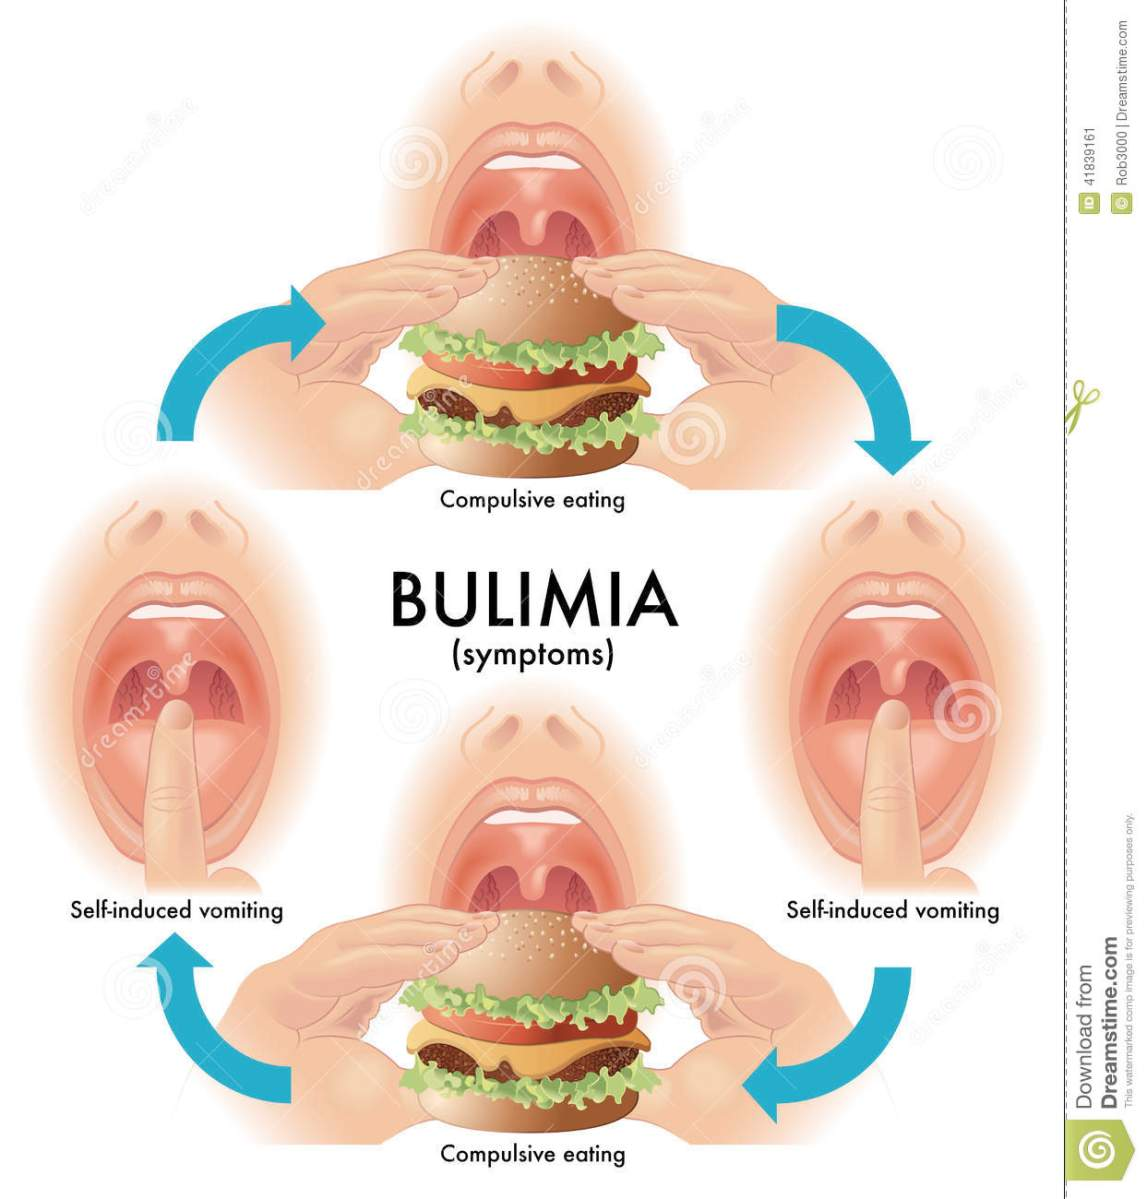 Bulimia Nervosa: What to Look for and How to Get Help